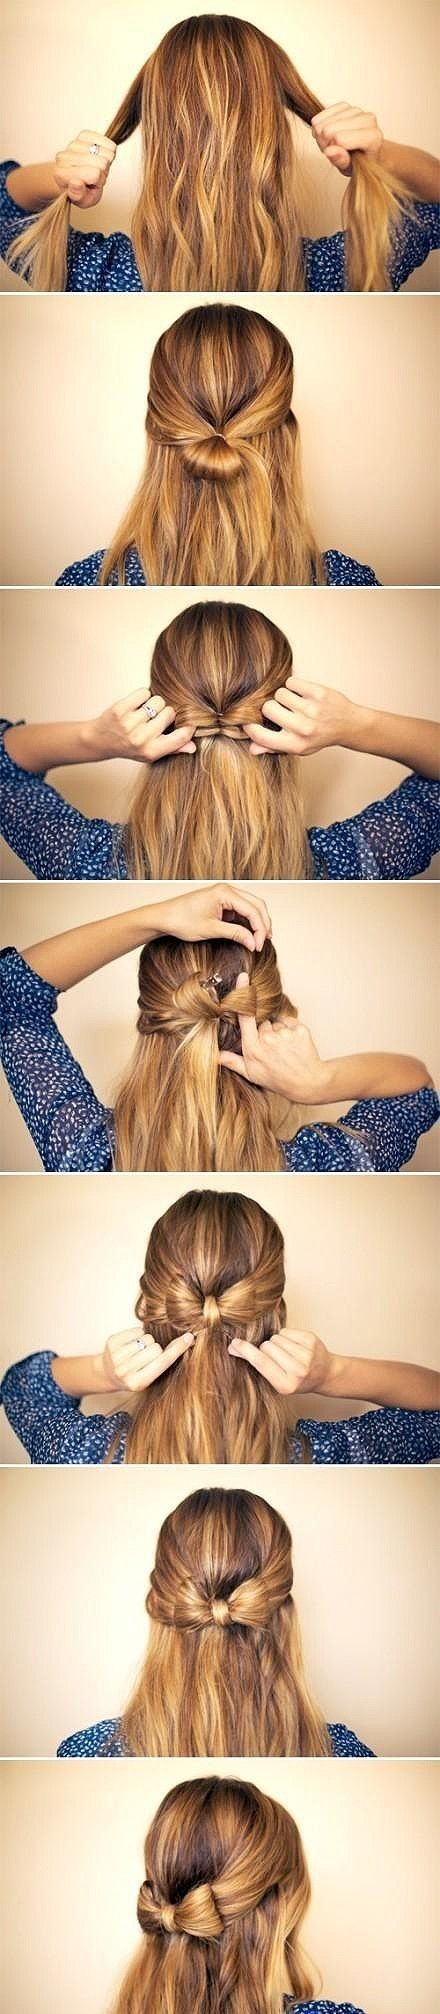 DIY Hair Style - Im so trying this